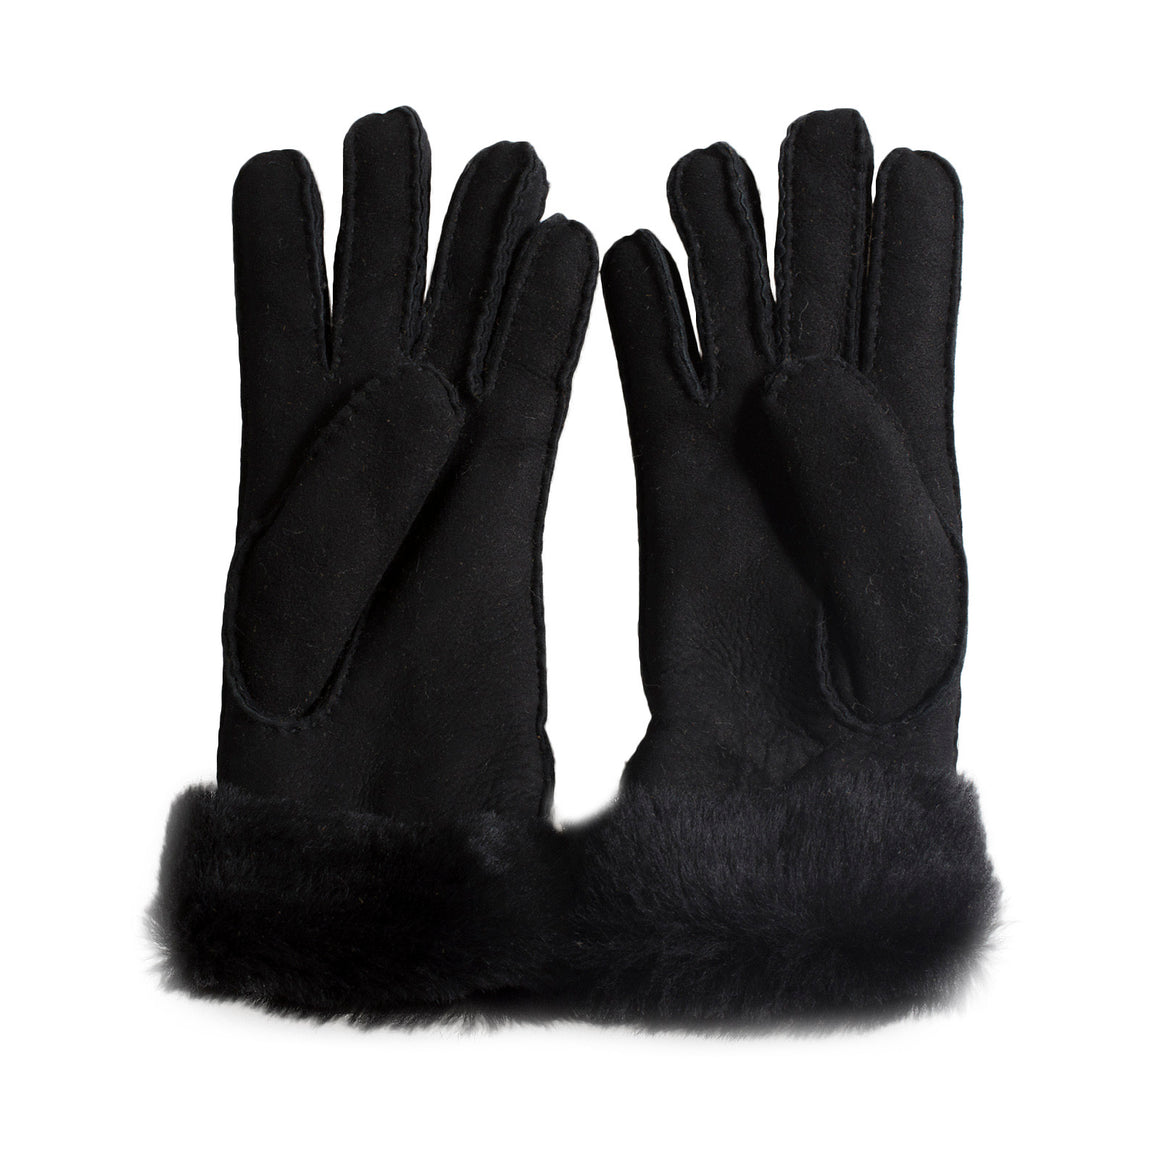 UGG Turn Cuff Black Gloves - Women's